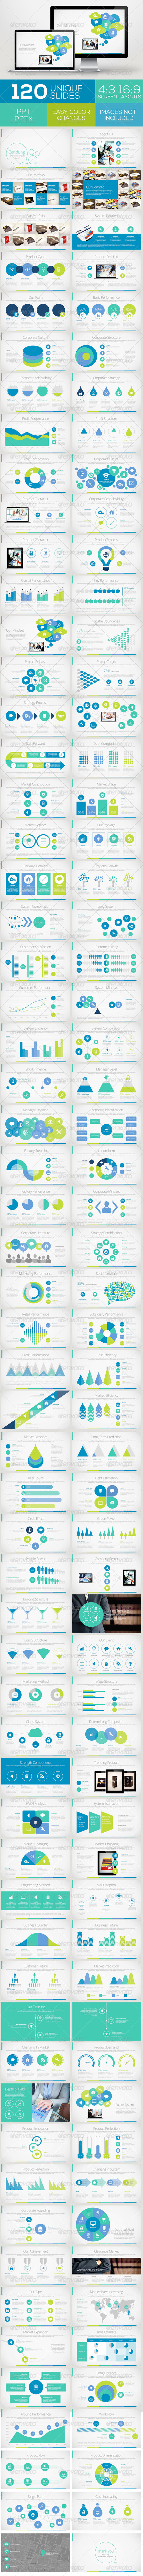 GraphicRiver Bandung Powerpoint Template Volume 3 7497632